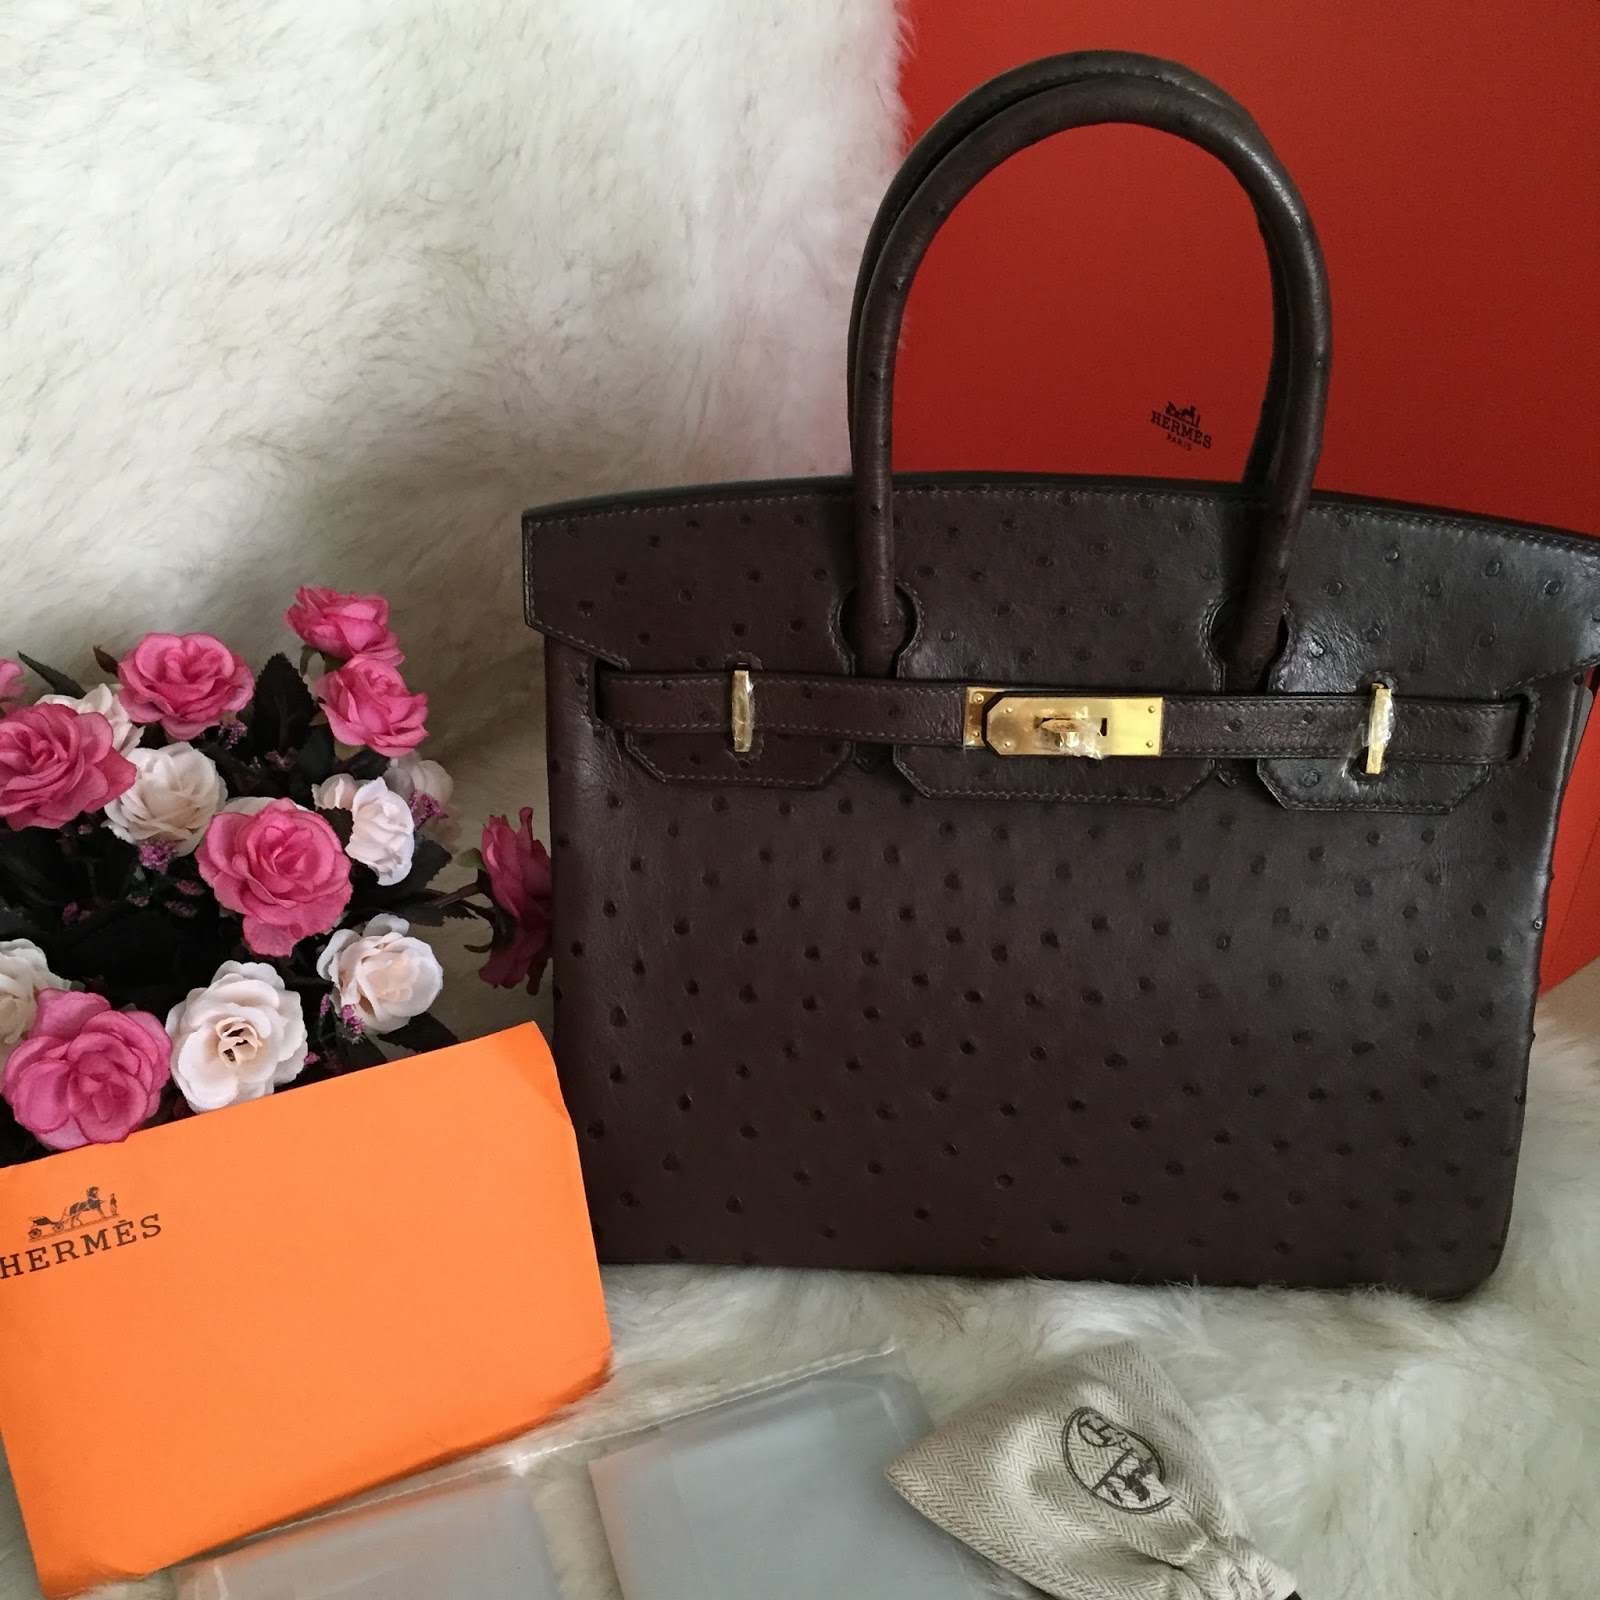 bd5a196c37eb Pre shipment photos of Hermes Birkin 30cm Bag Ostrich leather chocolate  with Gold Hardware